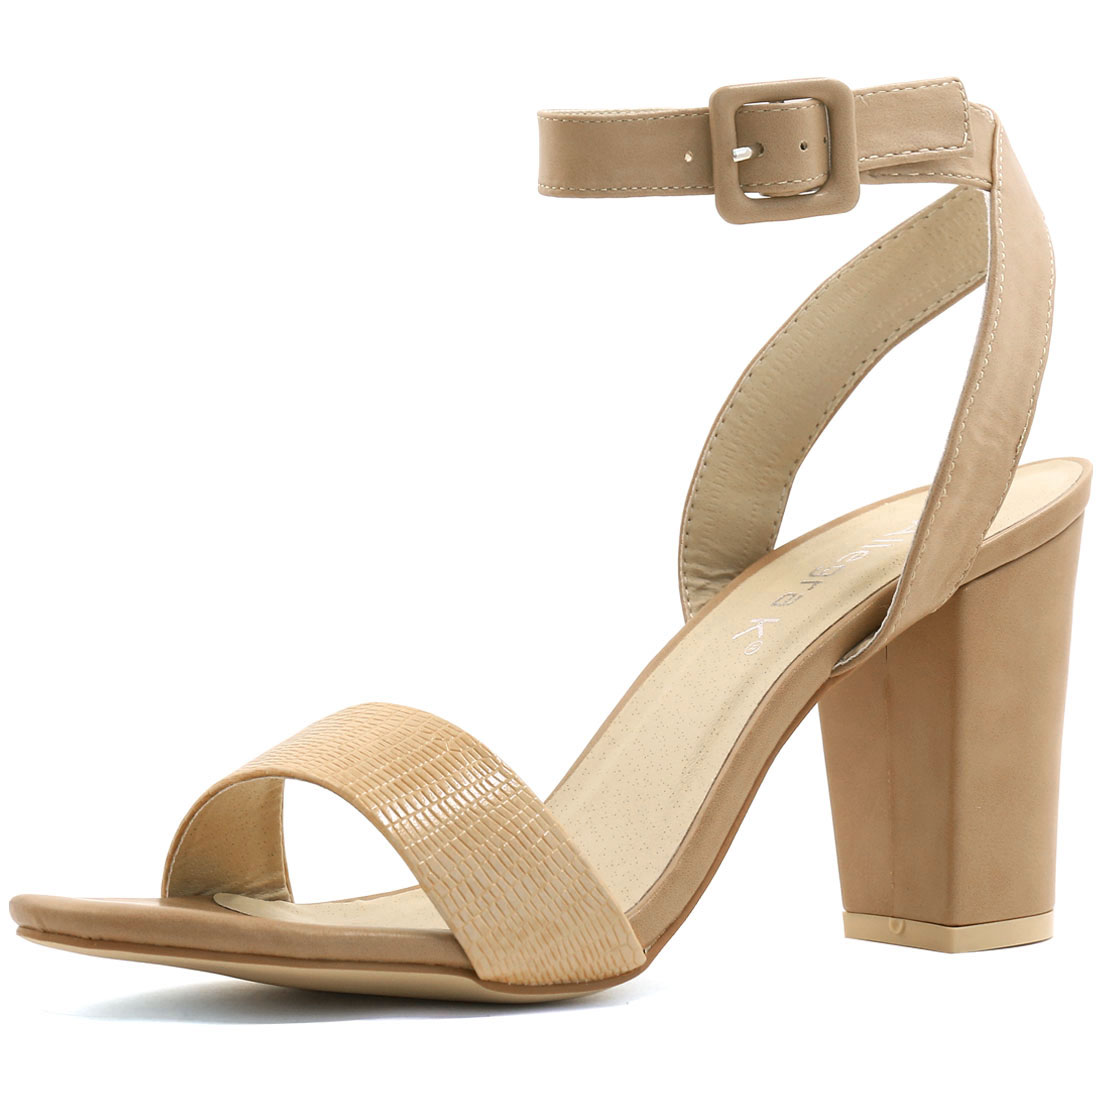 Woman Textured Vamp Chunky Heel Ankle Strap Sandals Tan US 7.5